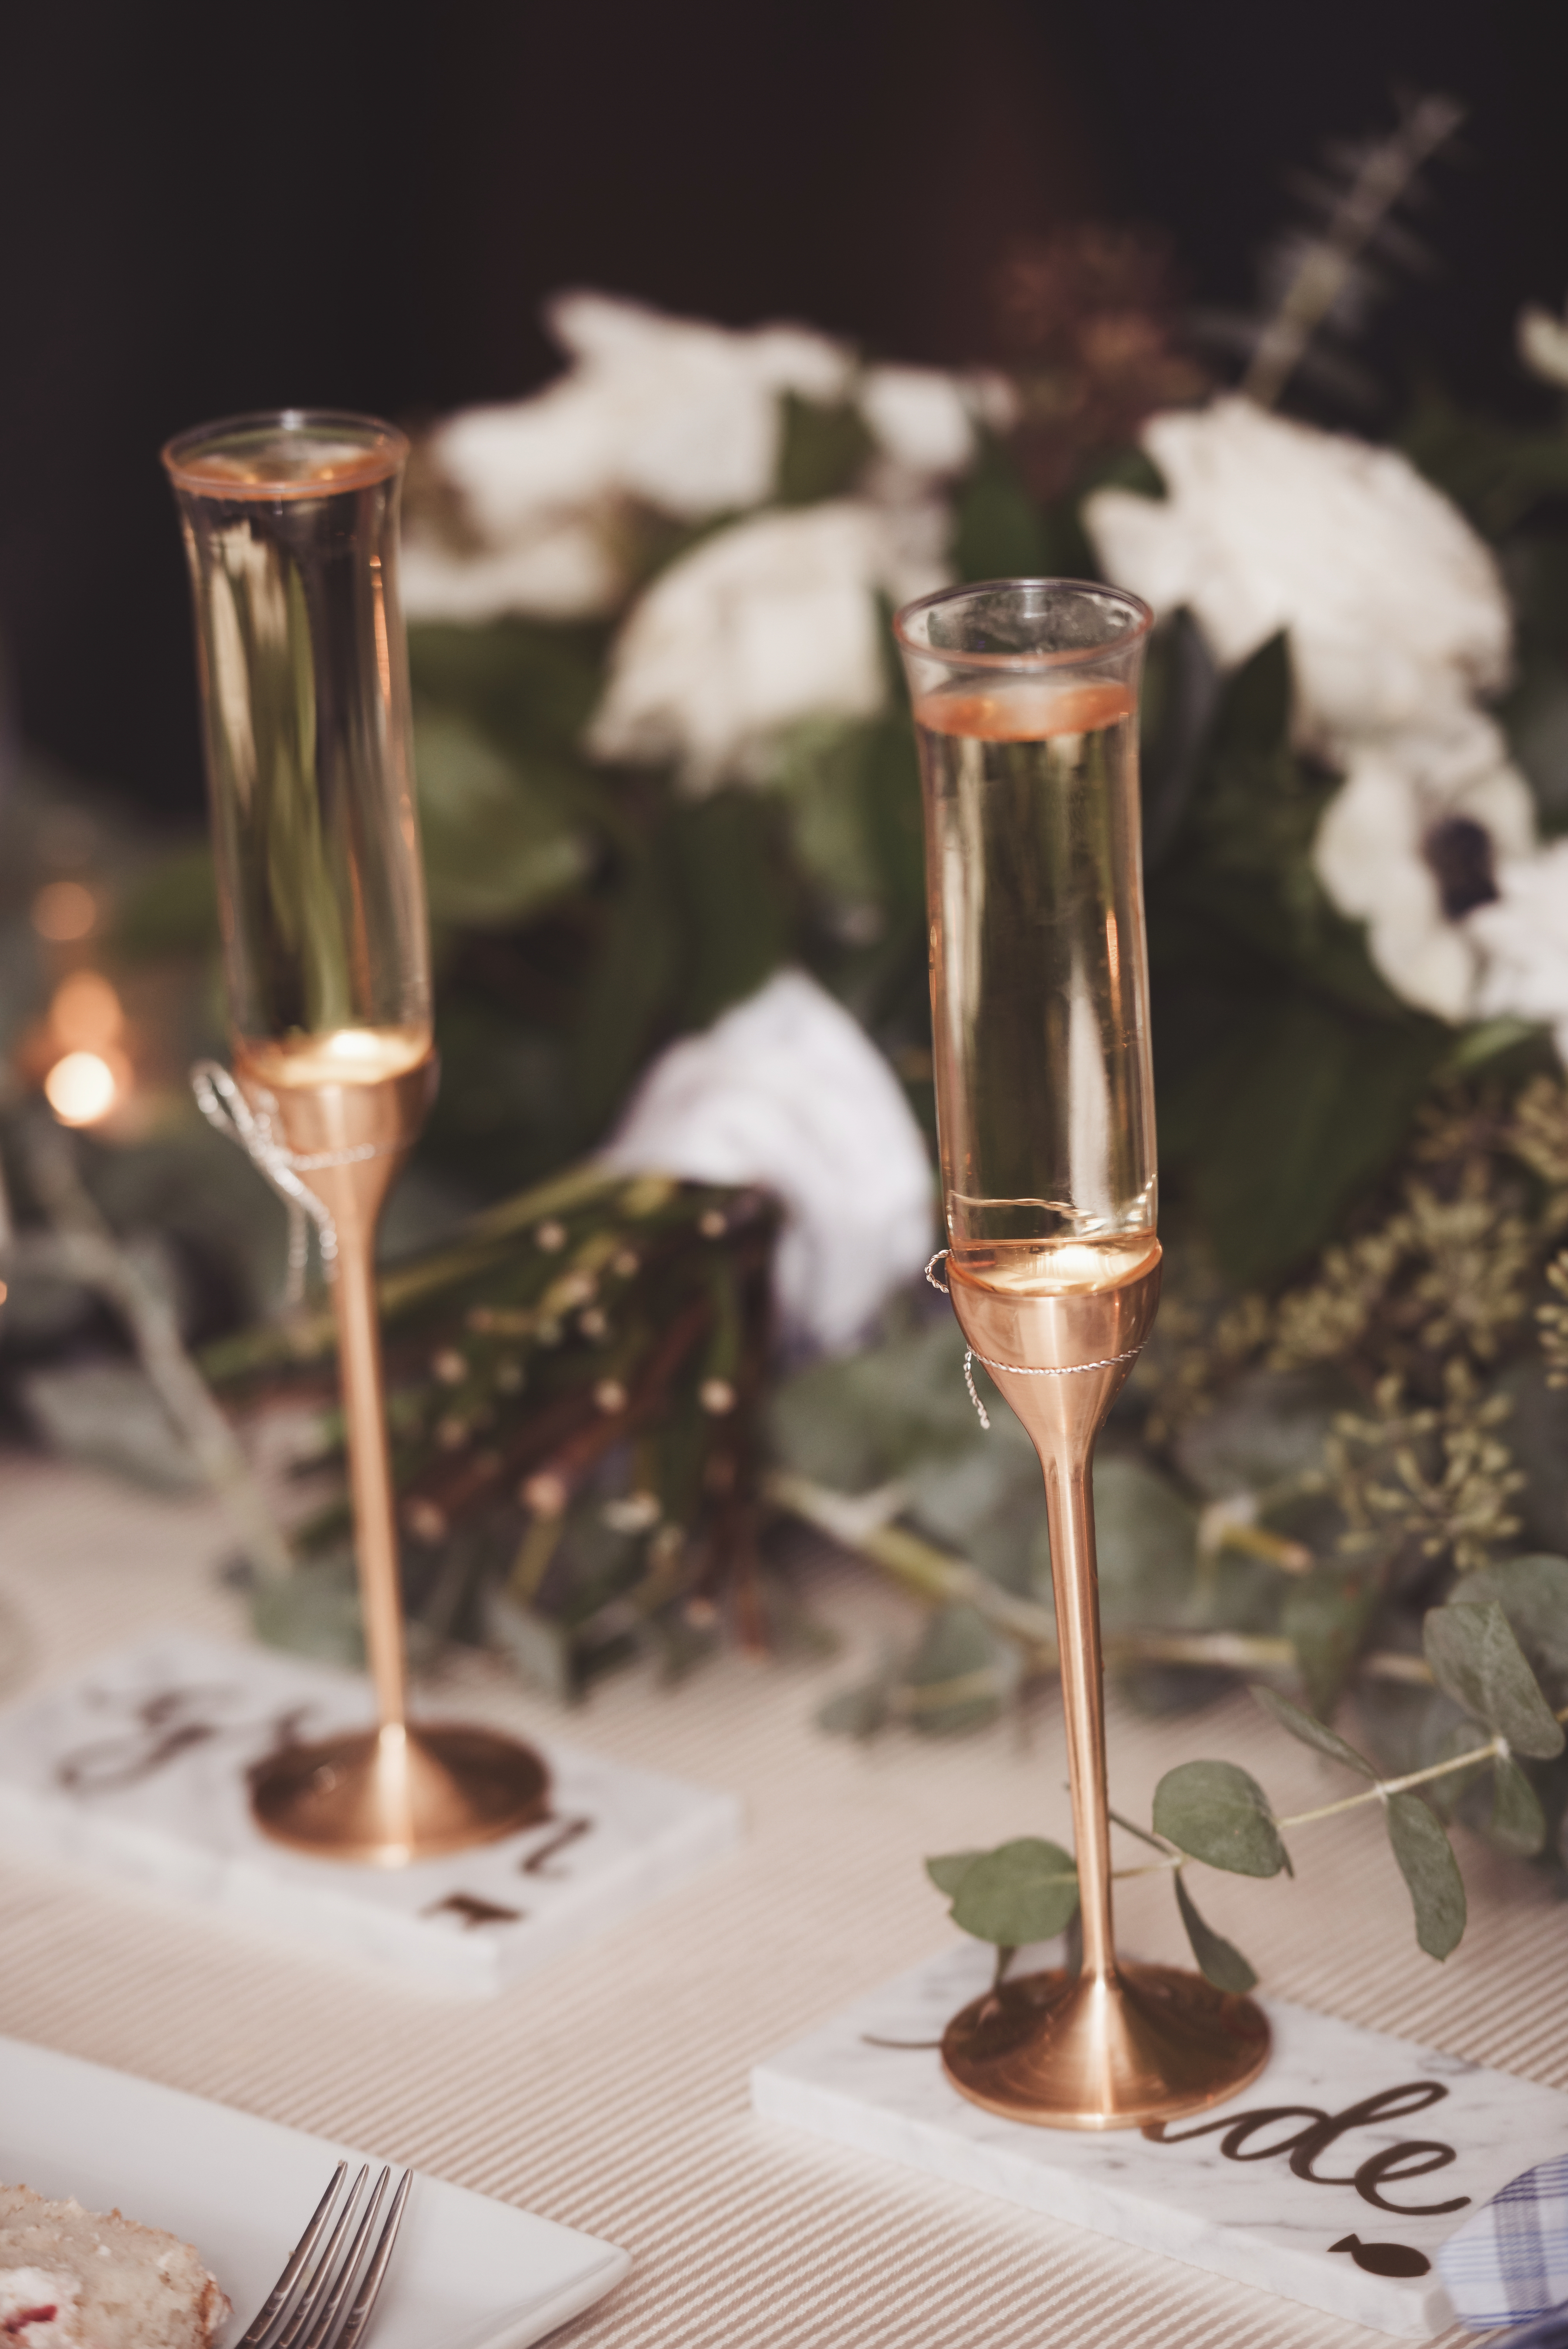 Wedding details by Type A Soiree